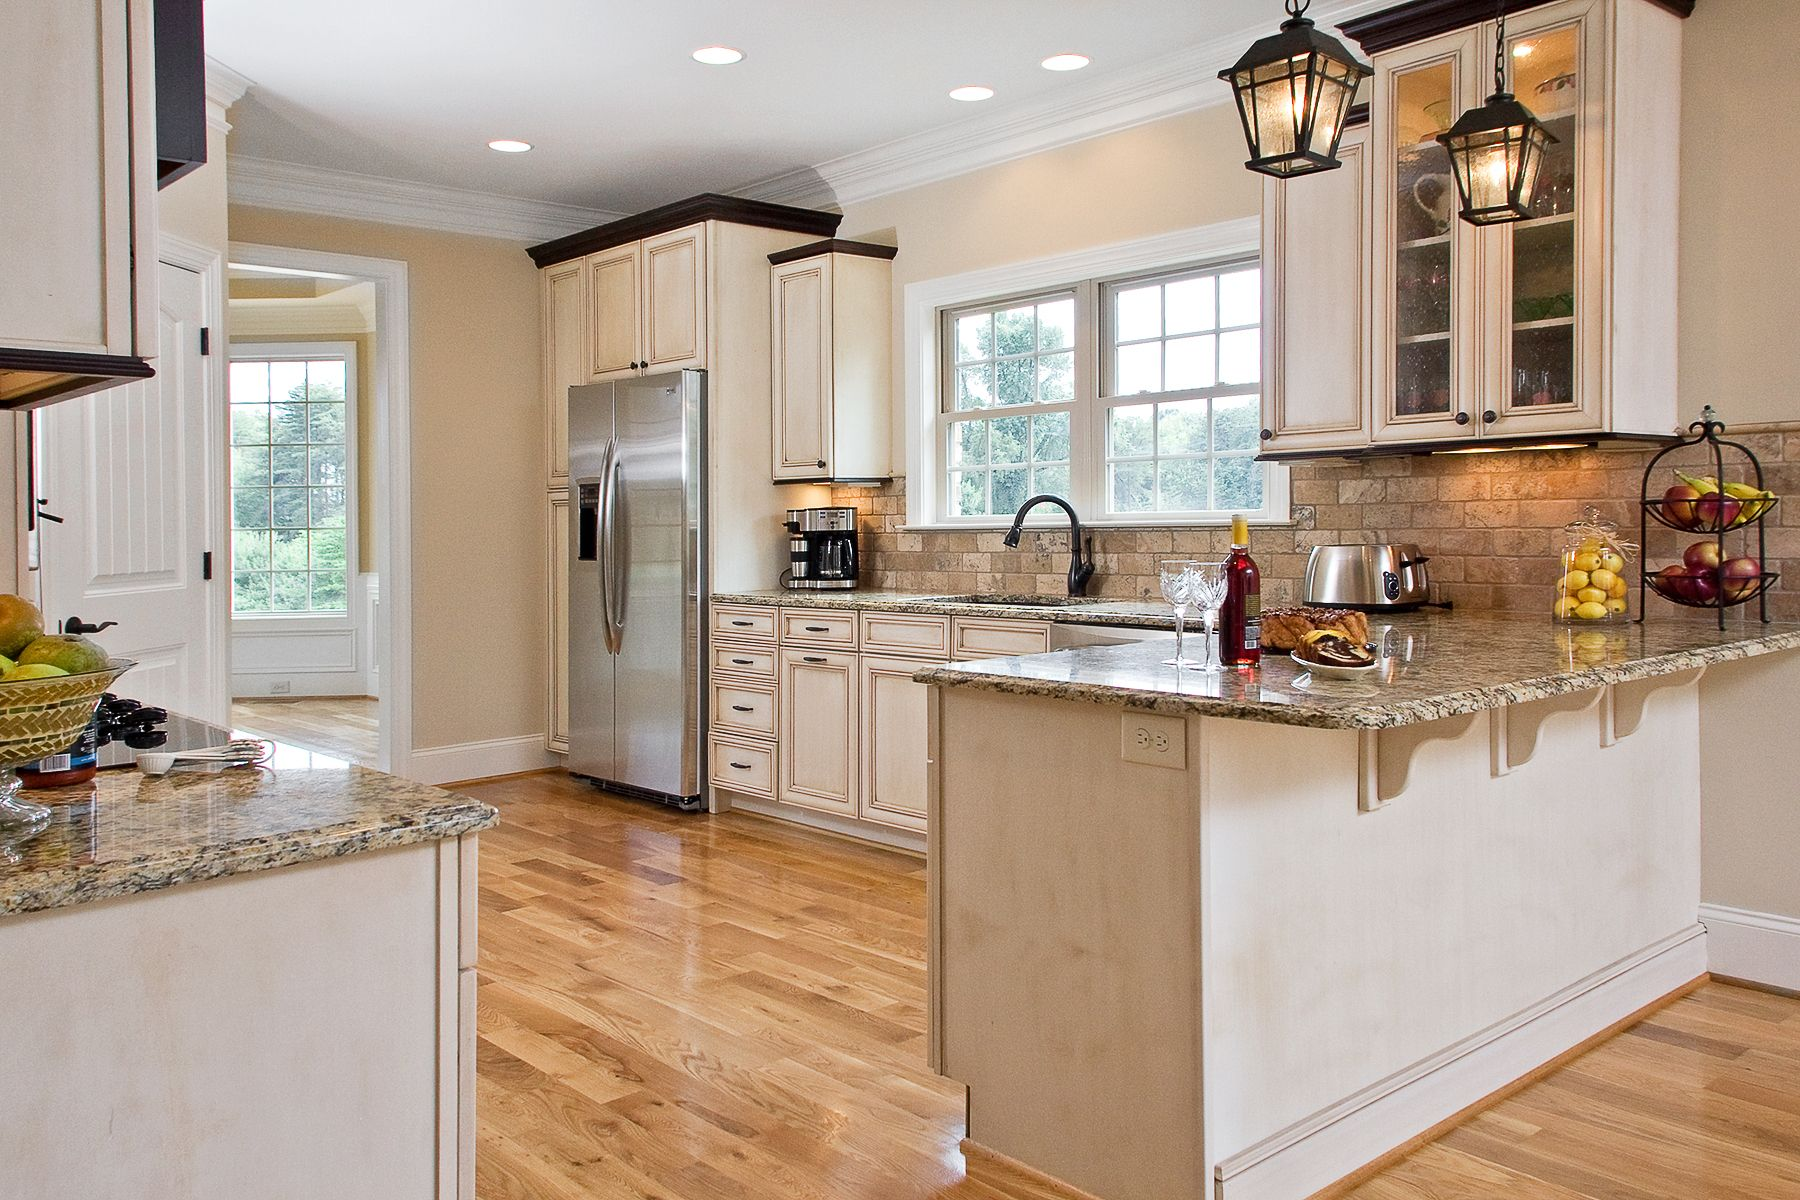 new kitchen #kitchen #design #newconstruction | new construction